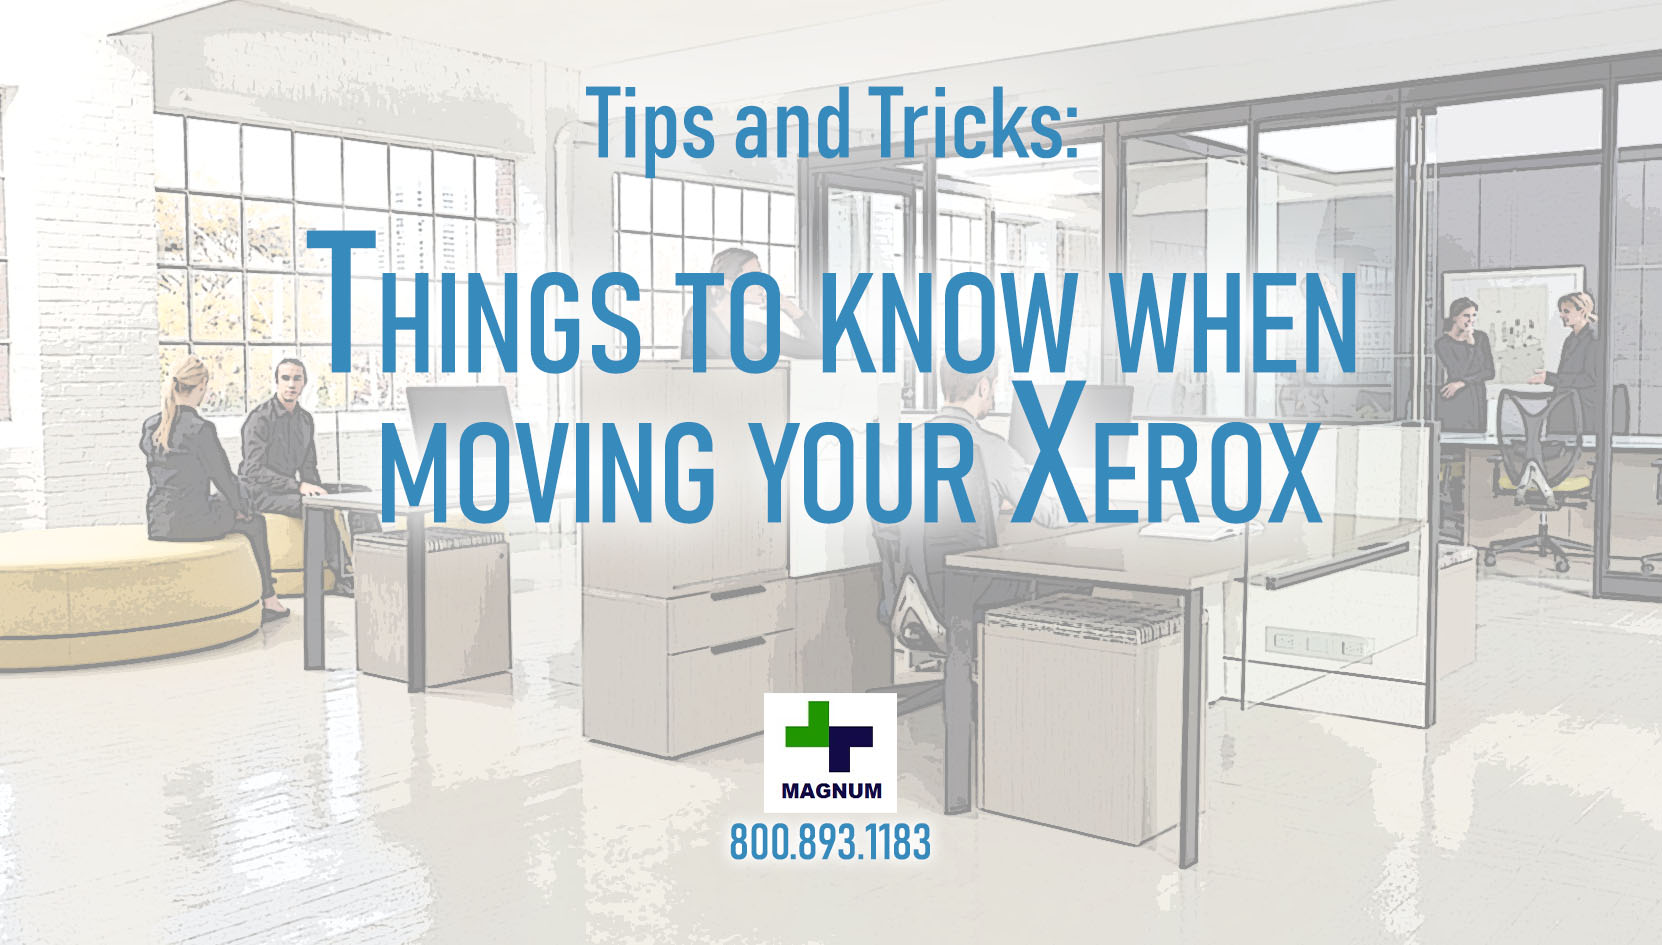 Tips for Moving Your Office Xerox Copiers or Printers